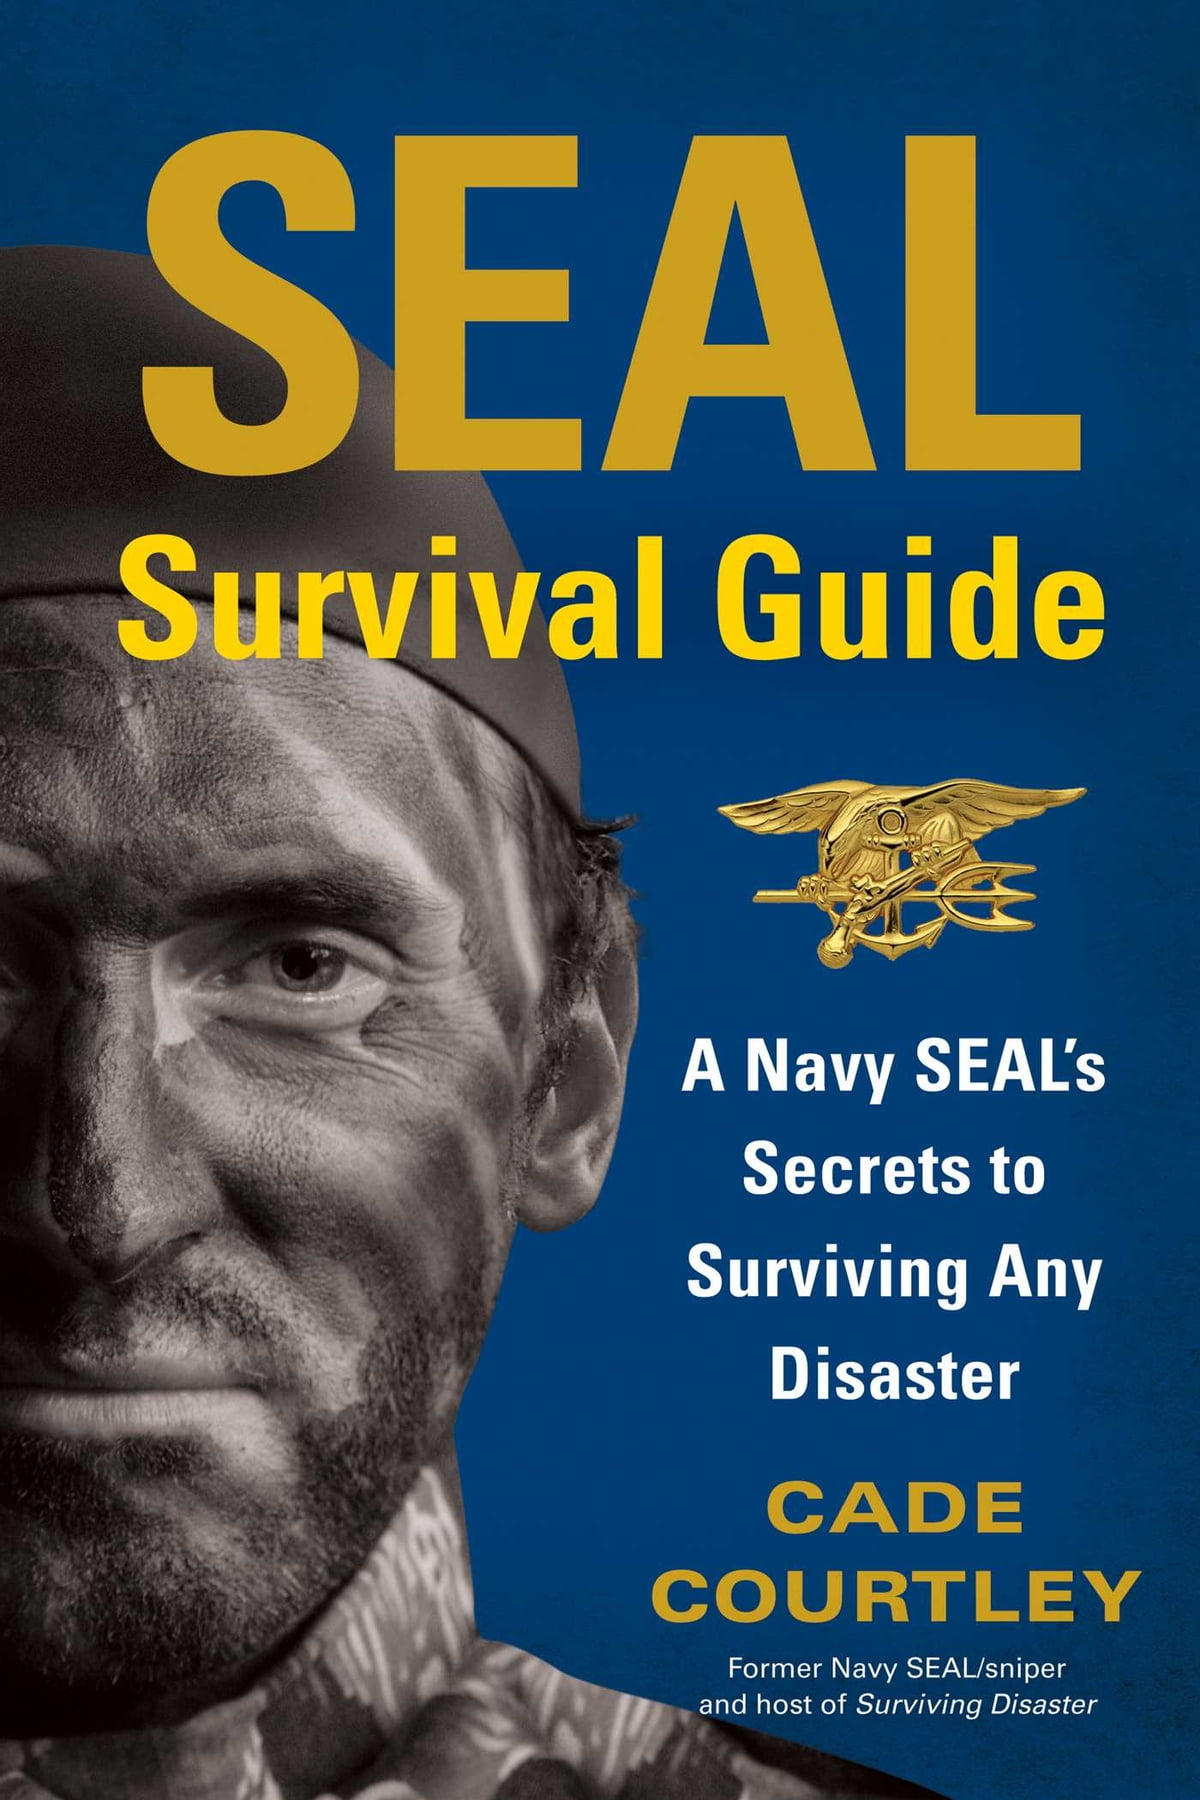 SEAL Survival Guide eBook by Cade Courtley - 9781451690309 | Rakuten Kobo